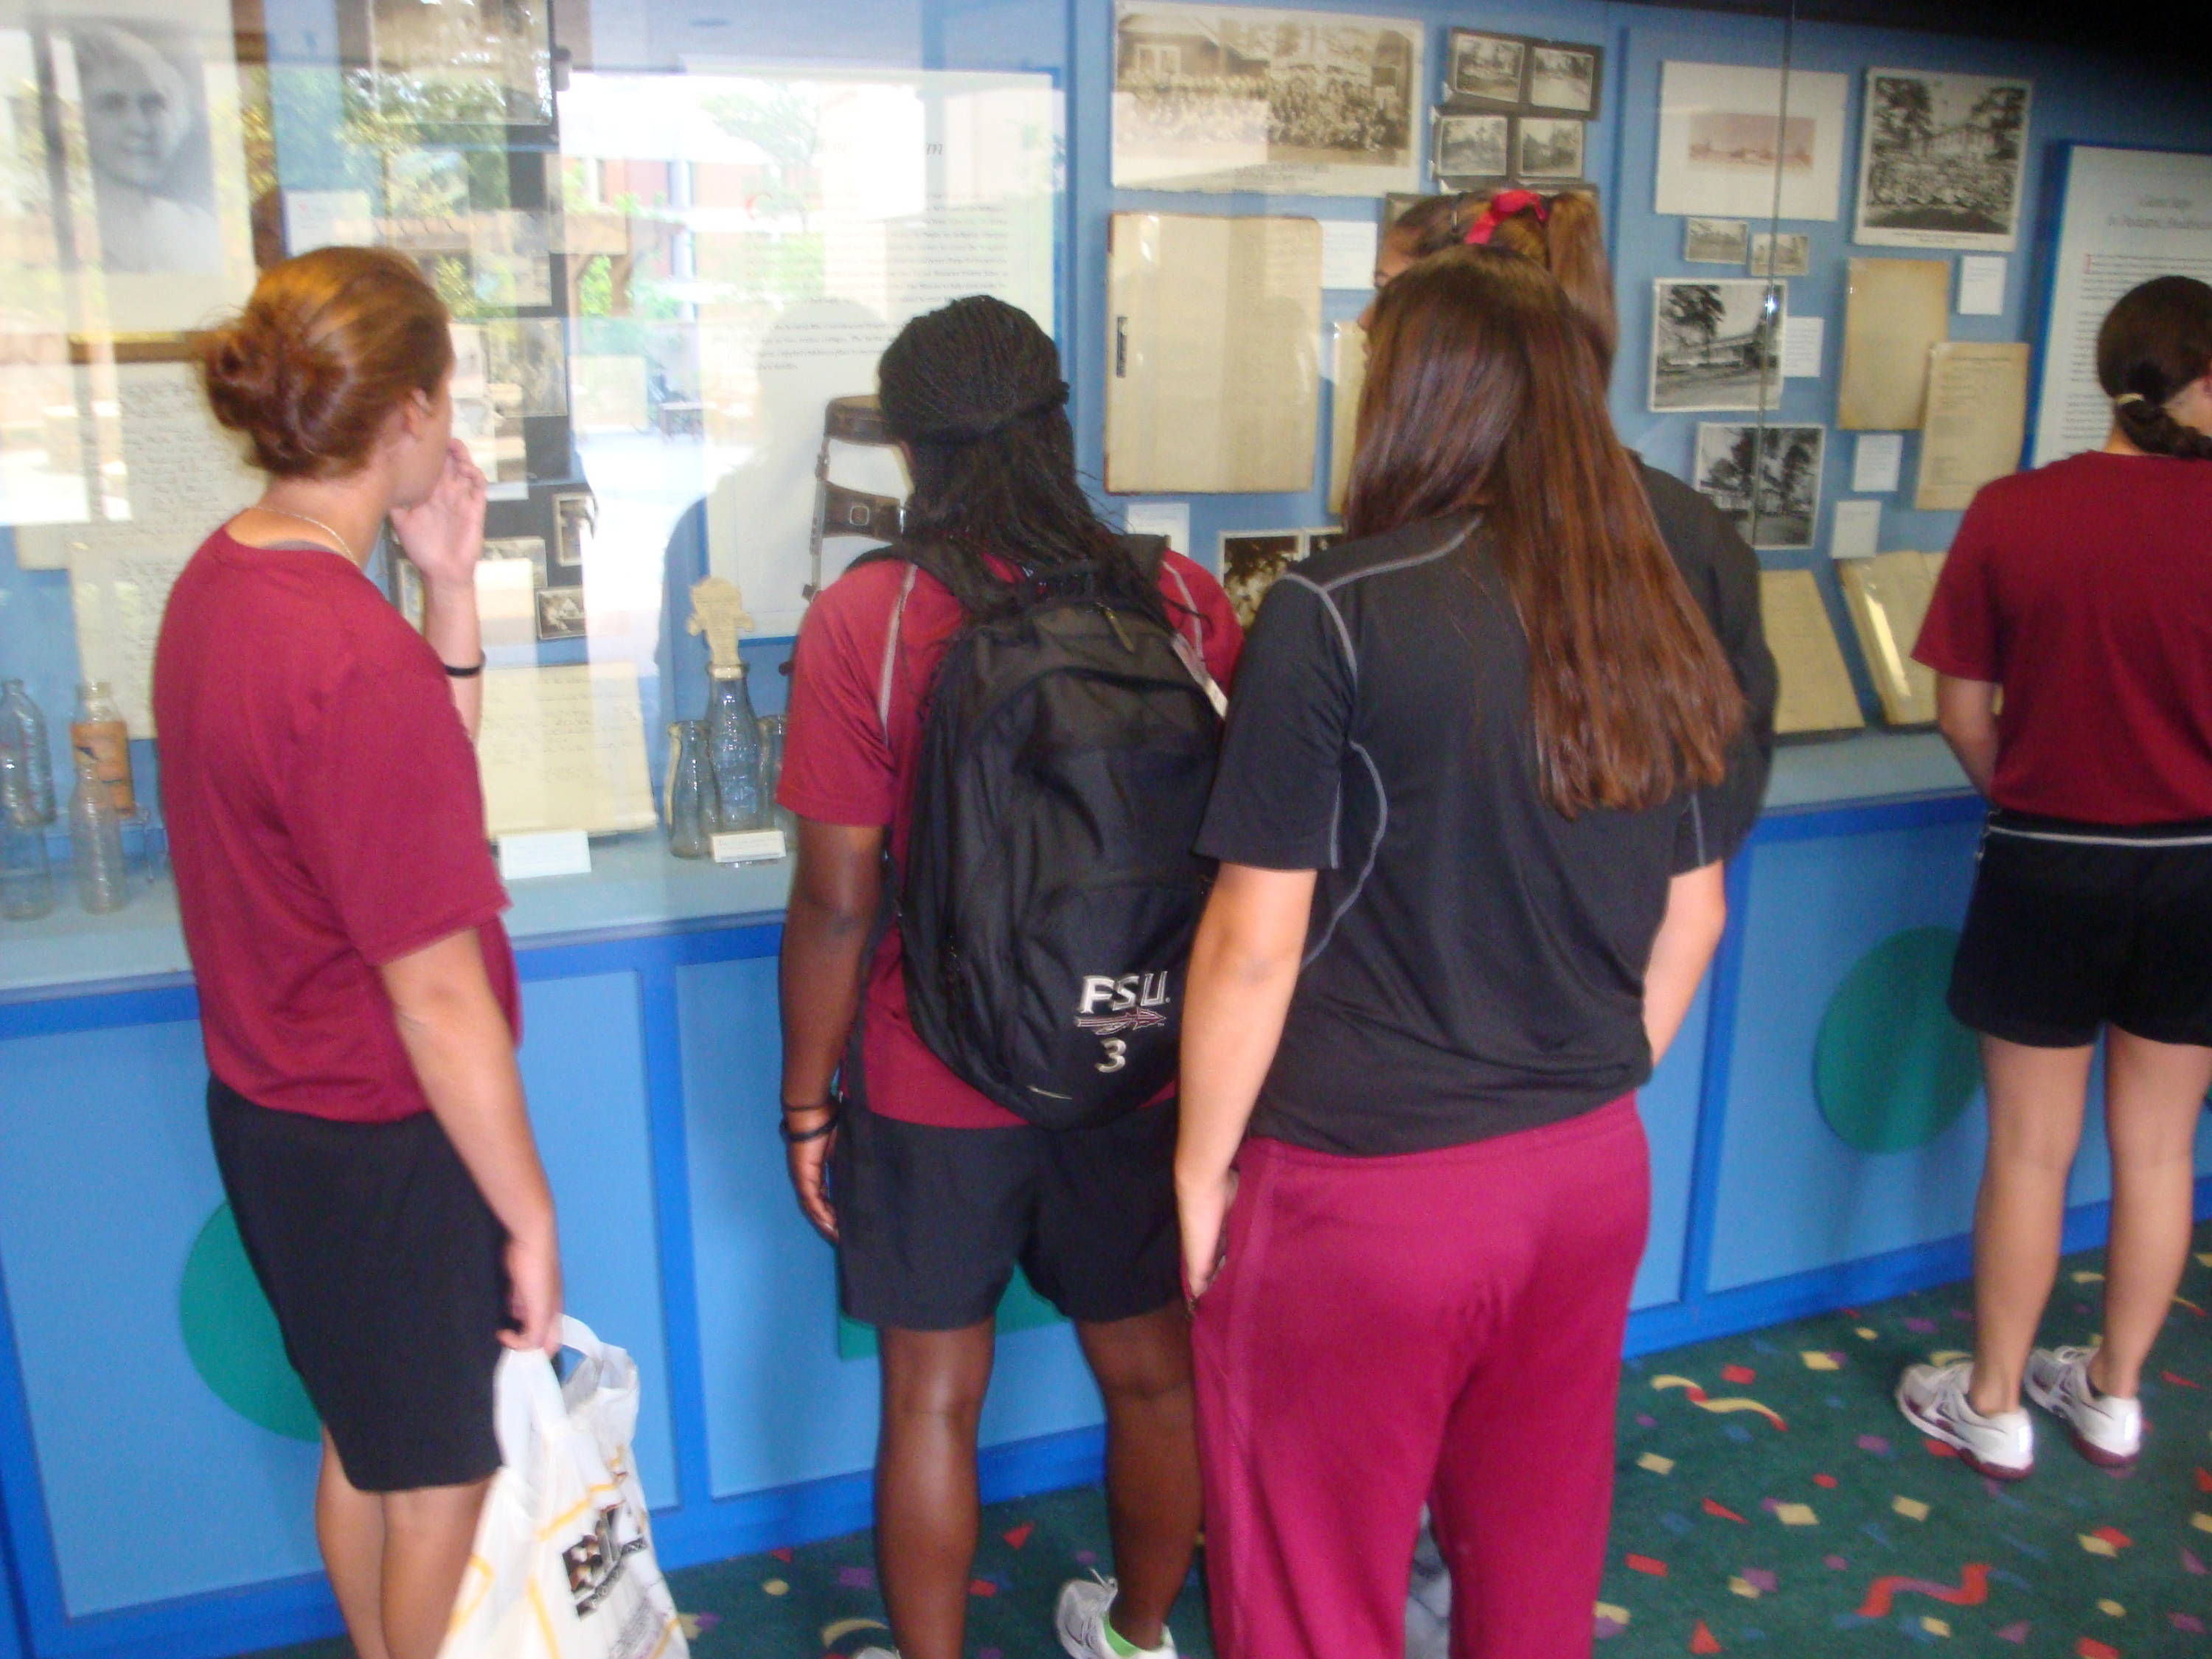 As we walked inside, the team studied some historical aspects of the children's health center